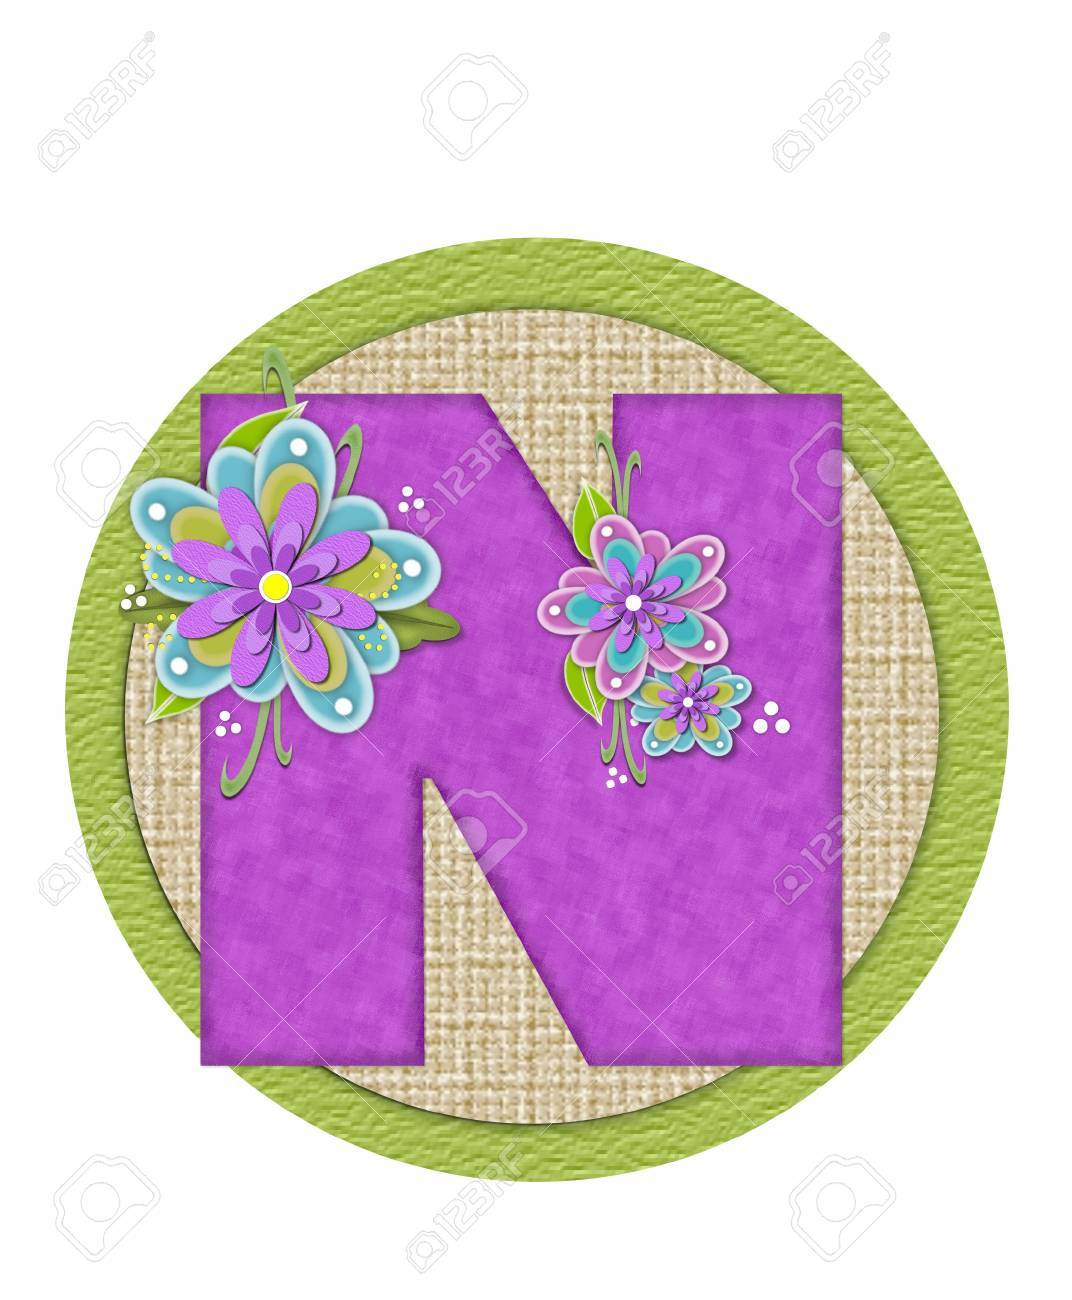 hight resolution of imagens the letter n in the alphabet set backyard bouquet is lilac and decorated with layered flowers in blue and lilac